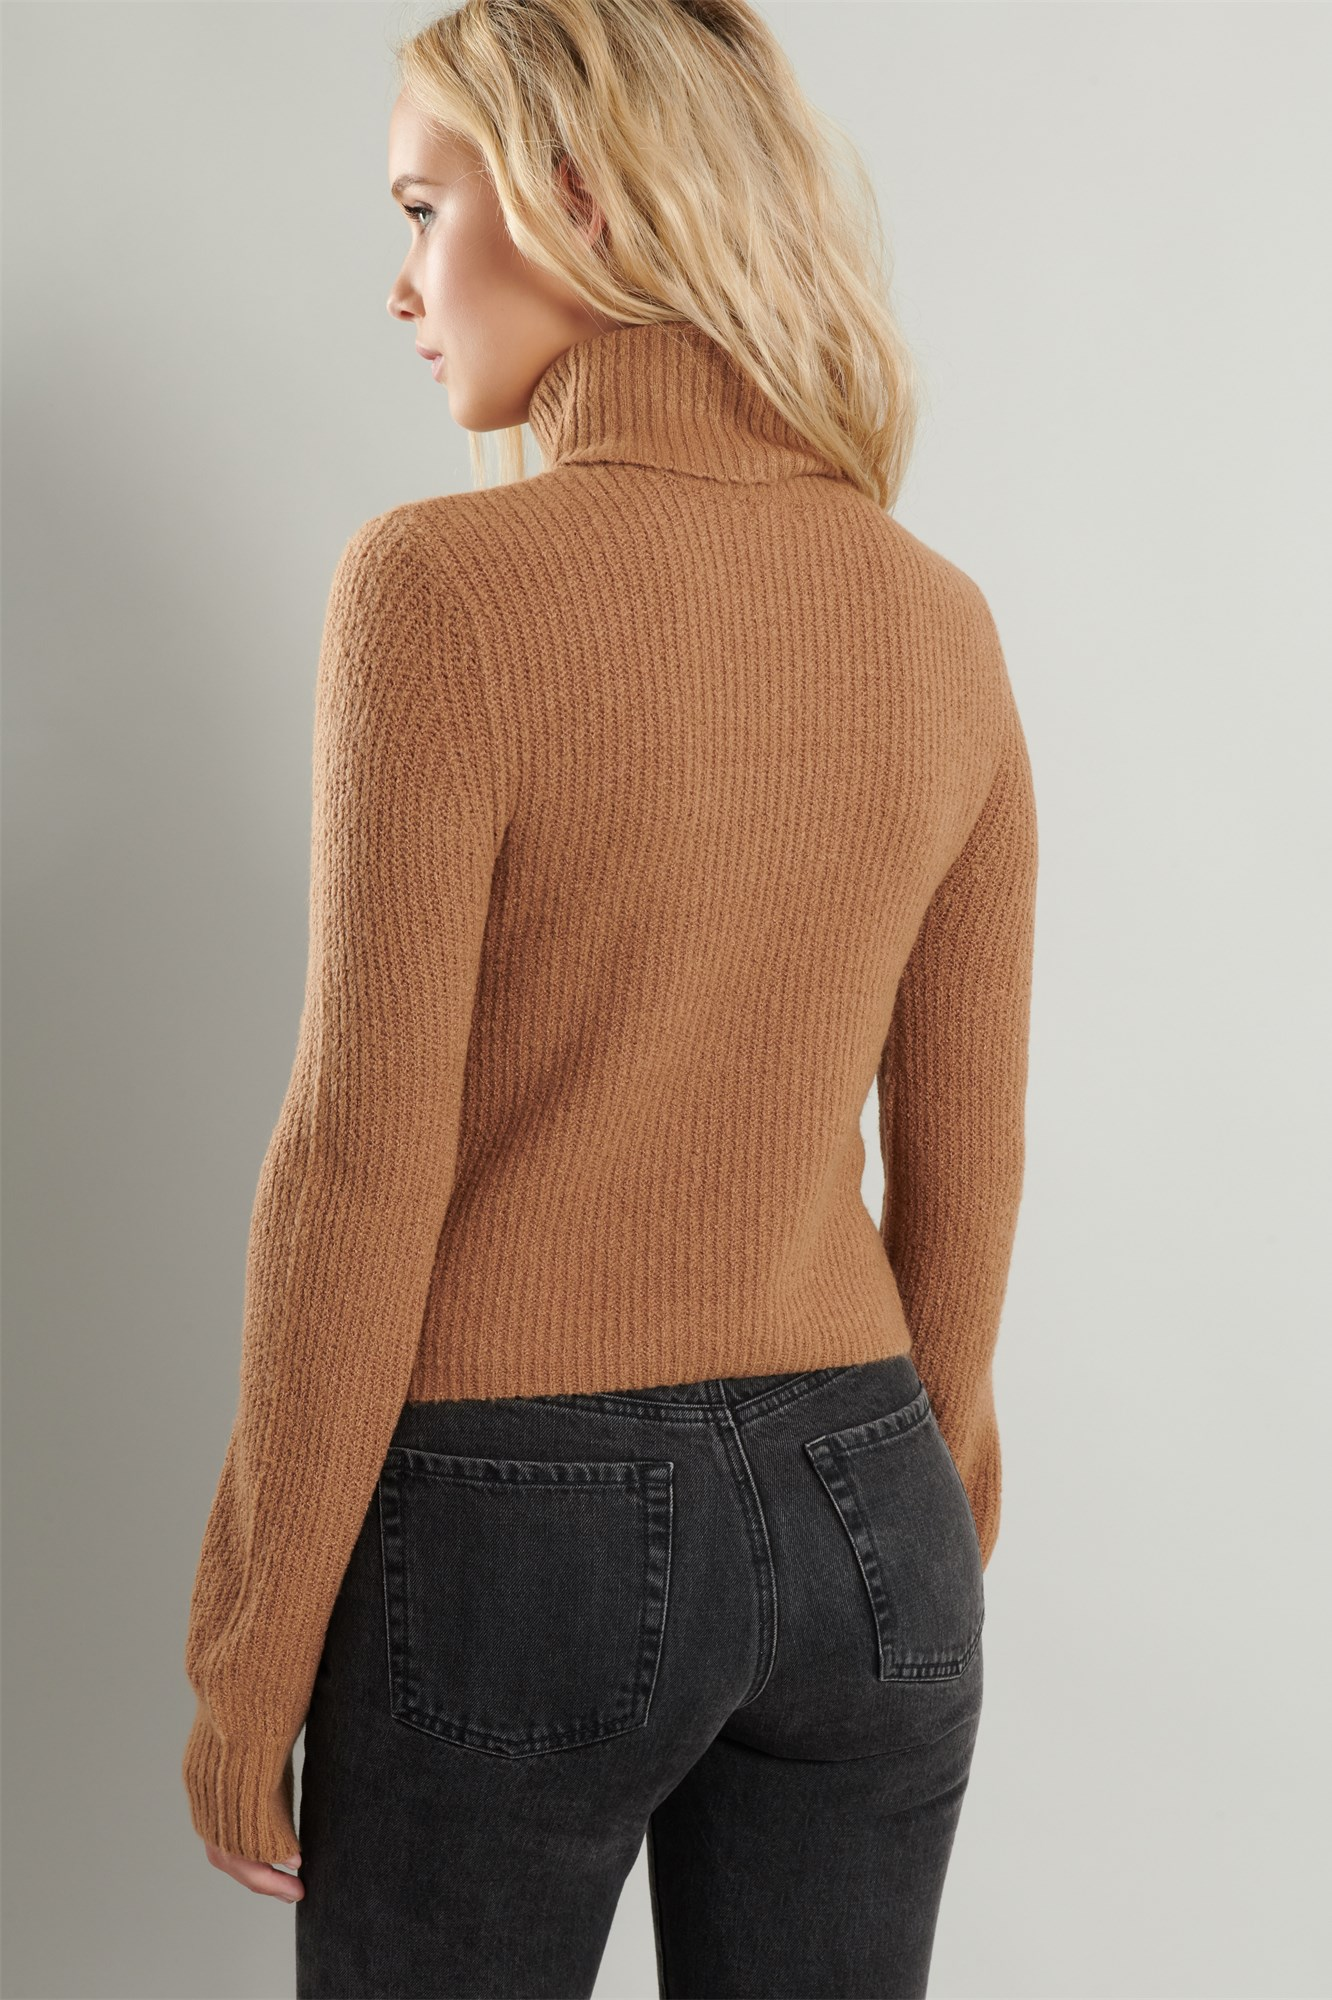 Image 4 of The Audrey Sweater